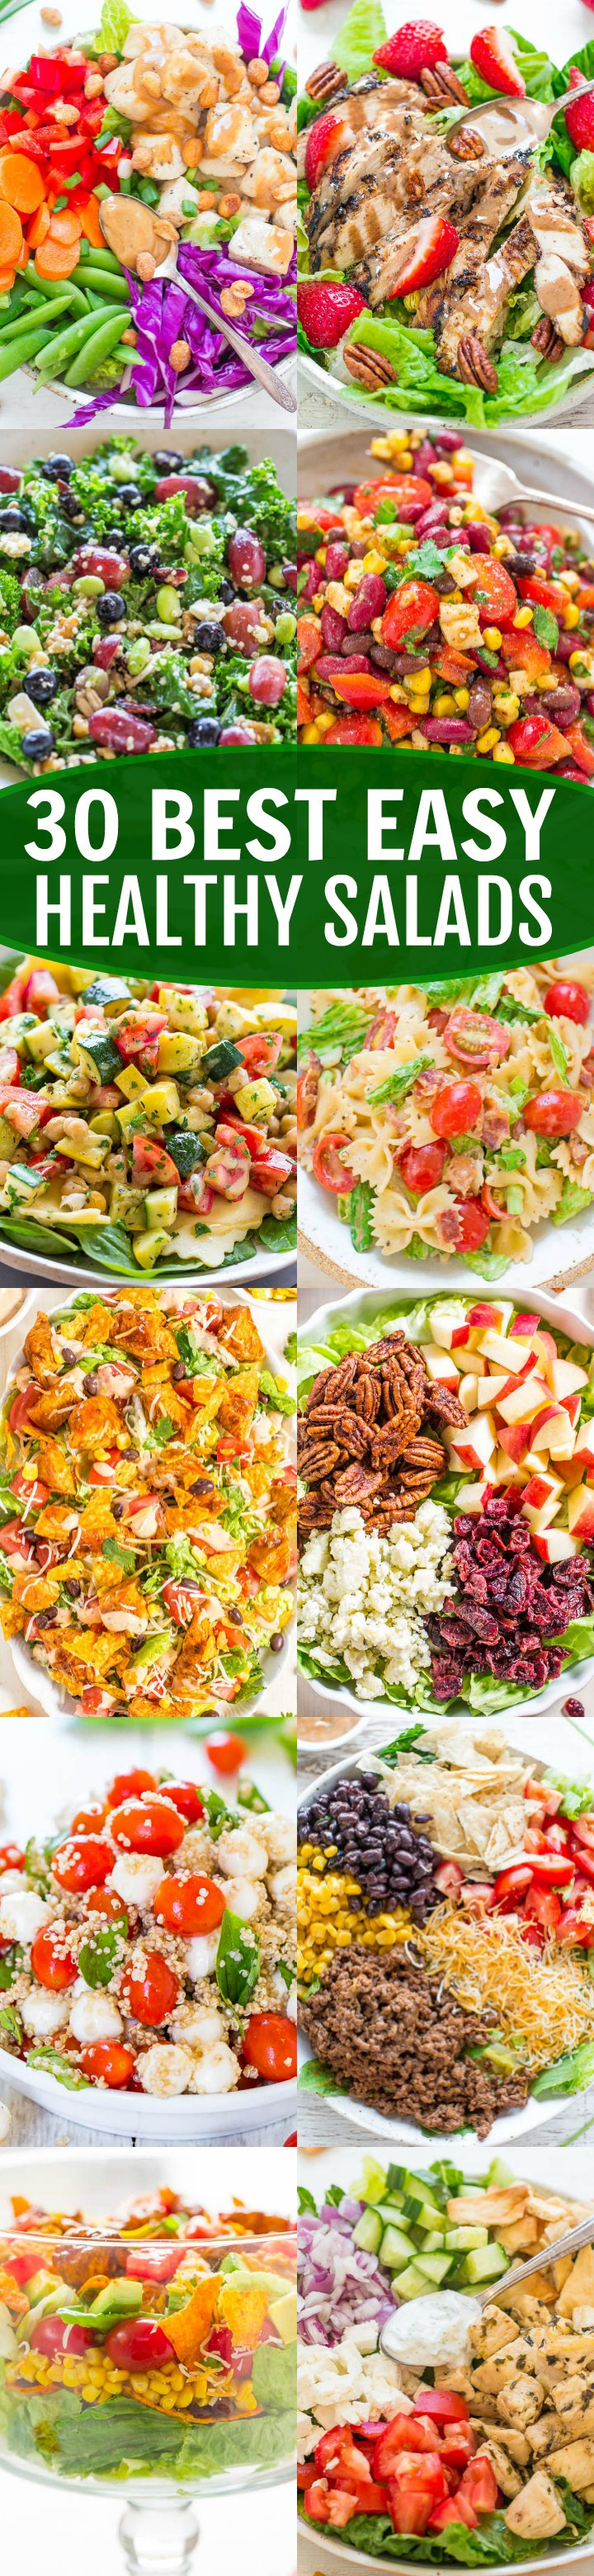 30 Best Easy Healthy Salads -Looking for easy salad recipes that are both filling and flavorful? The 30 healthy salads on this list are the BEST salads you'll ever eat!